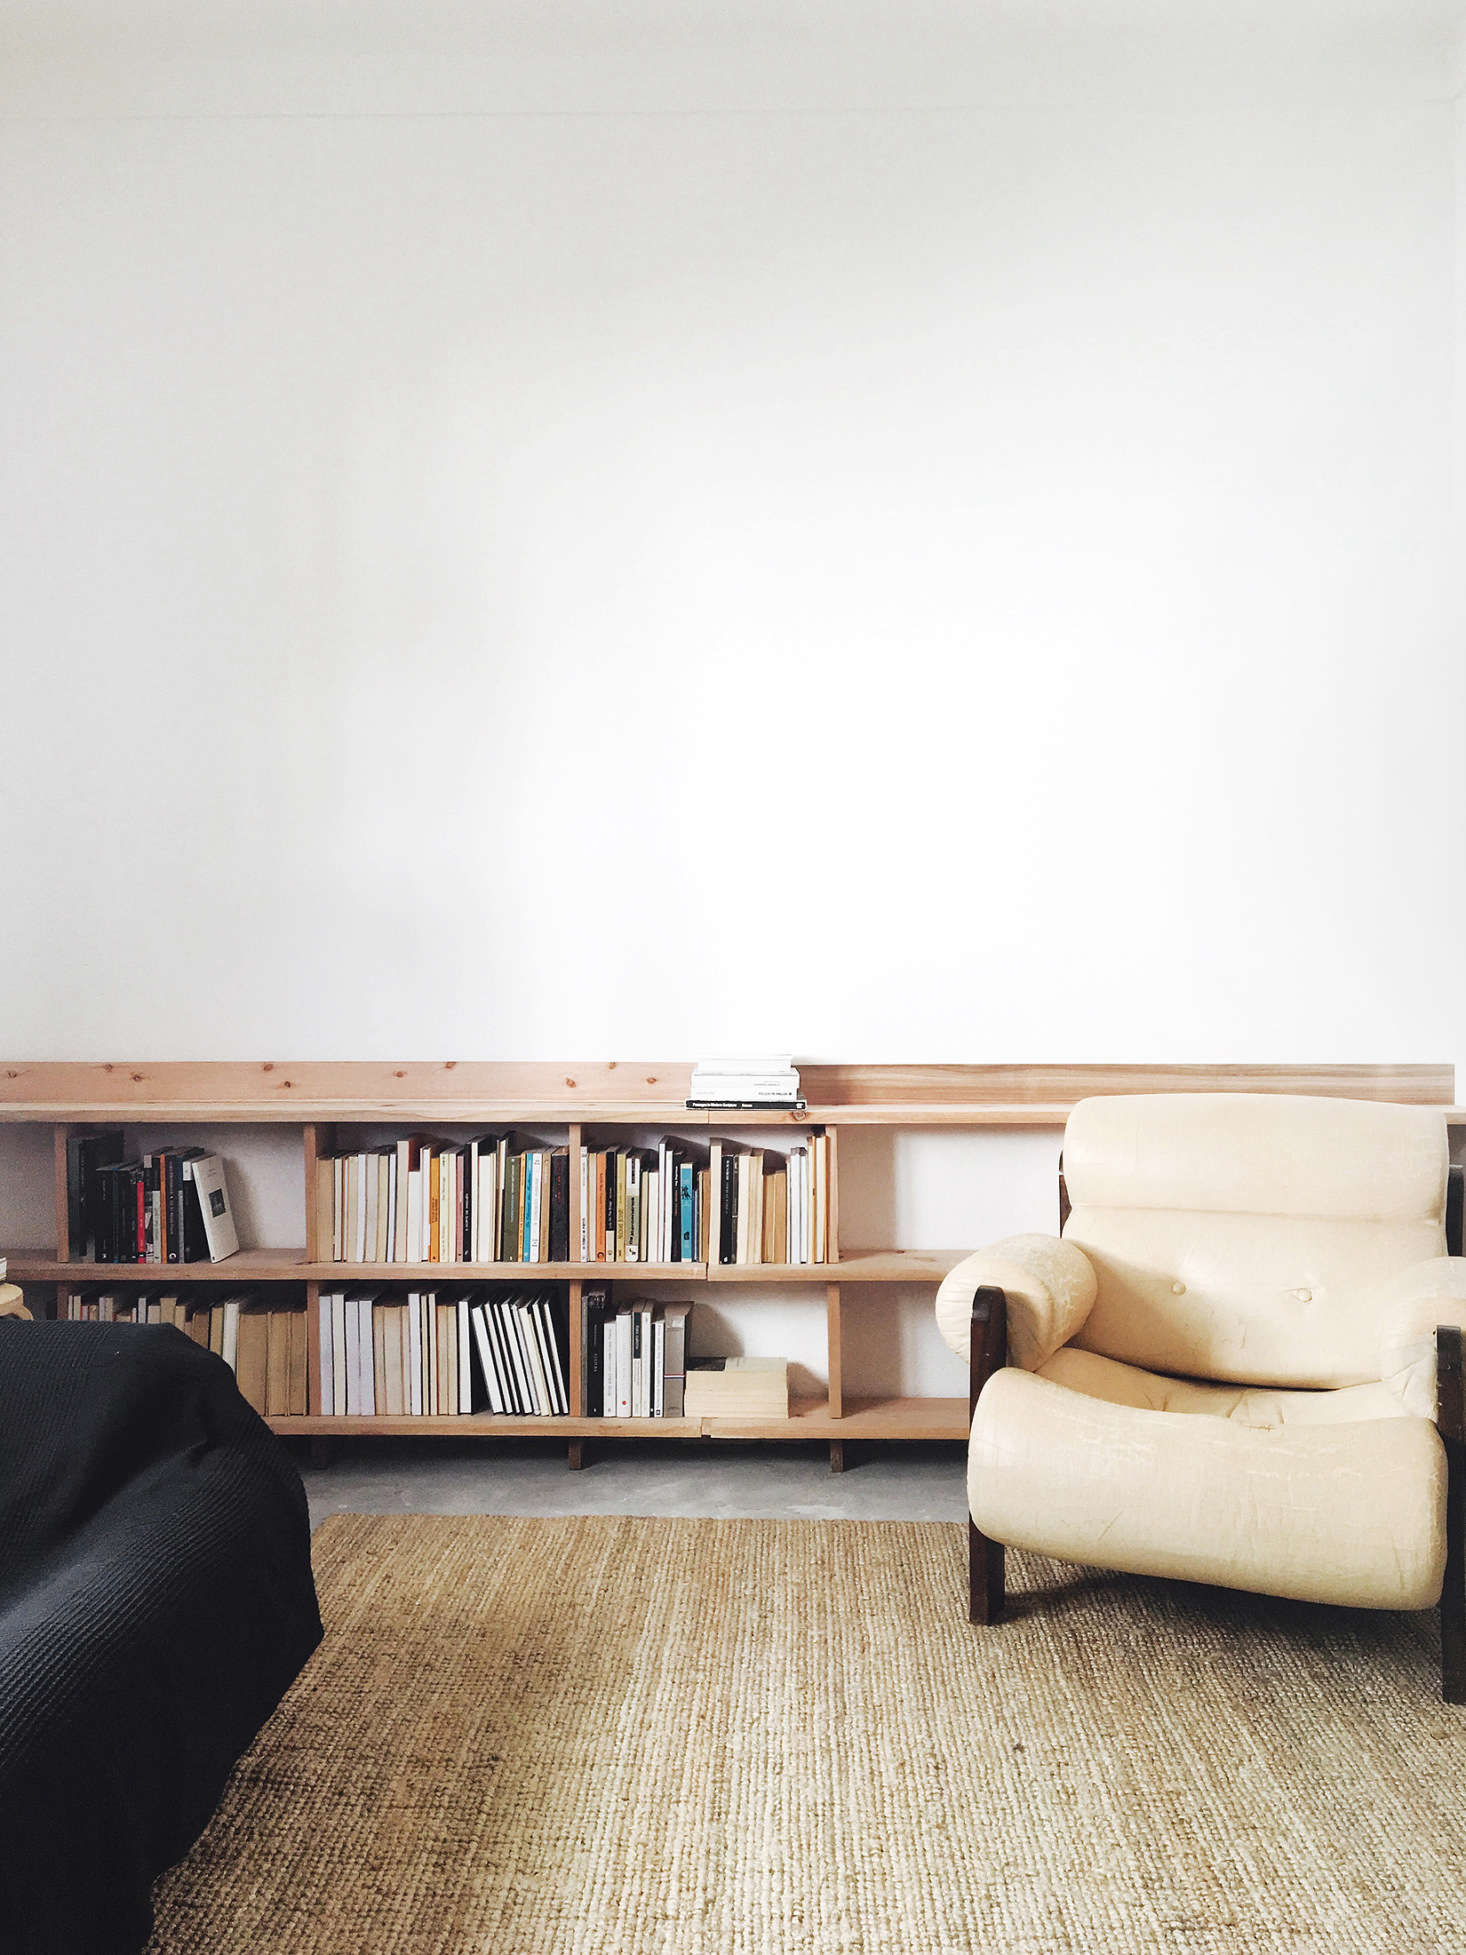 In the living area, attention is focused on the lower half of the room, with a simple woven mat and a low, waxed-wood bookshelf built into one wall.